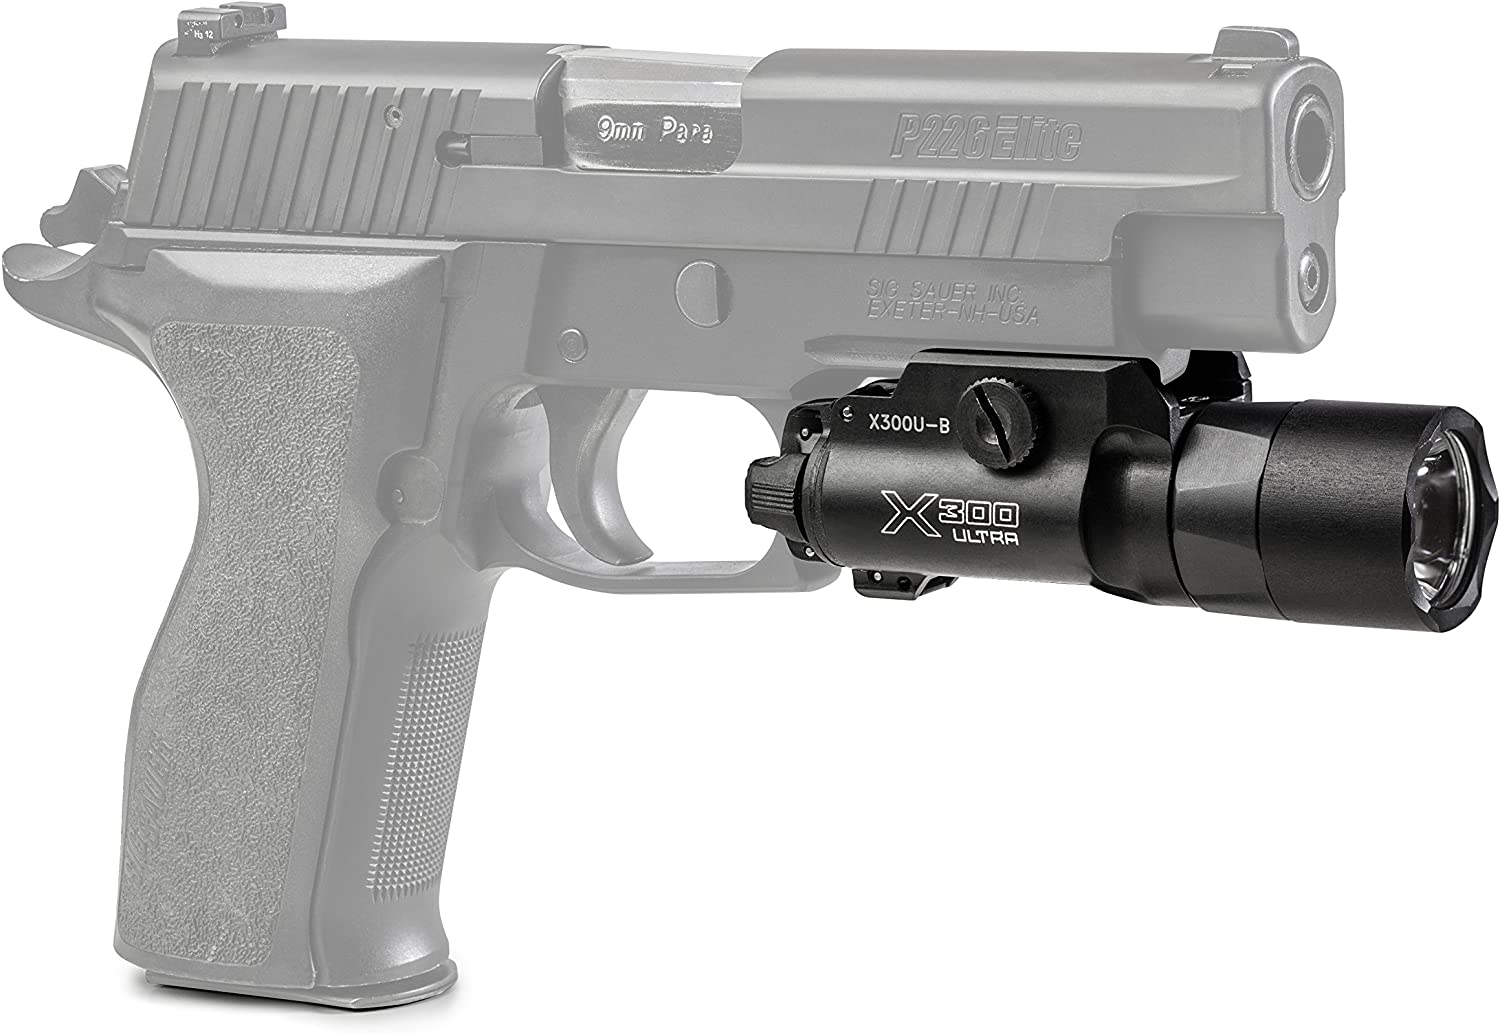 This is an image of a pistol with pistol light attached below, in black color.